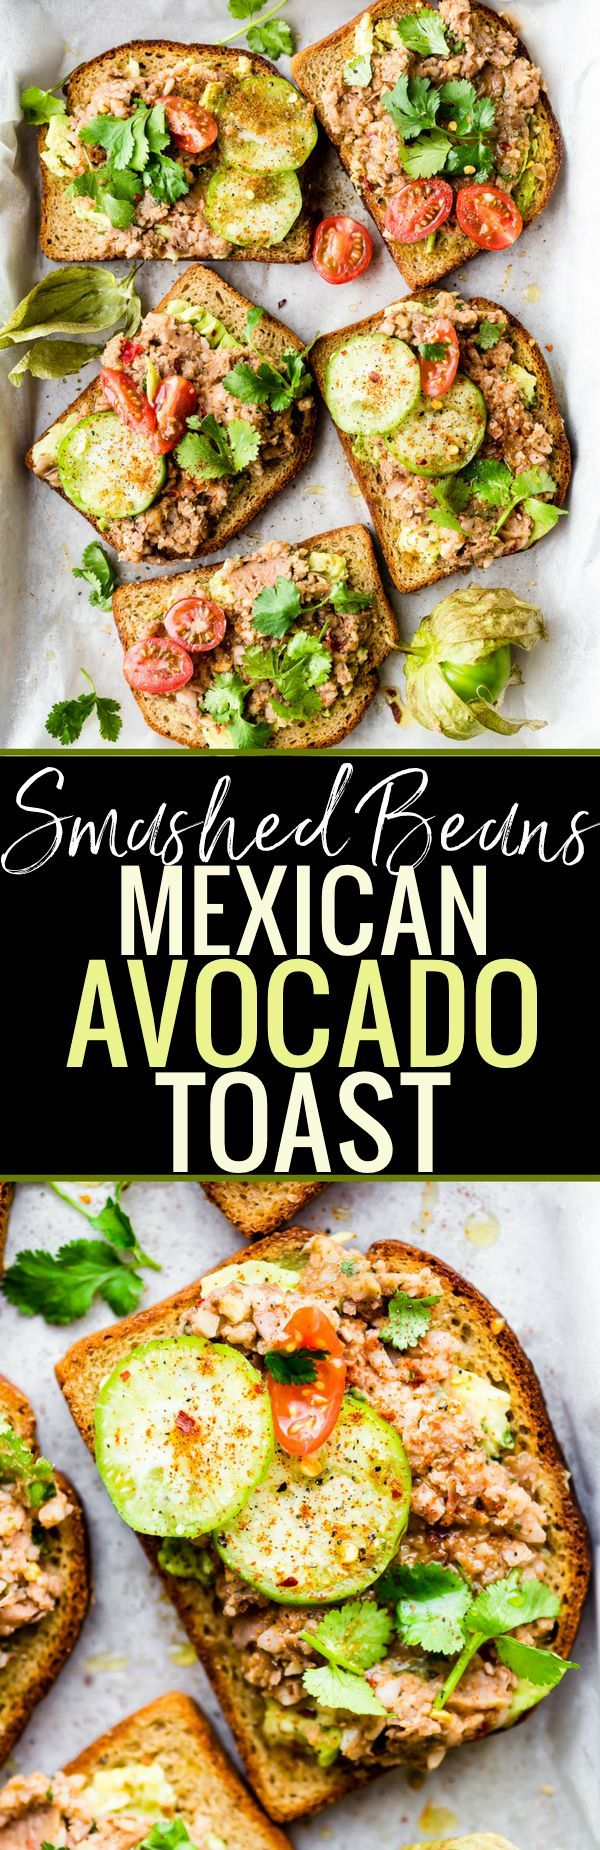 Gluten Free Smashed Mexican Beans Avocado Toast recipe! A heartier yet Healthy take on Avocado Toast Recipes. This Fully Loaded MEXICAN style avocado toast is Vegan Friendly and loaded with Flavor!! A simple, yet spicy, meatless meal, breakfast, or even a quick appetizer.